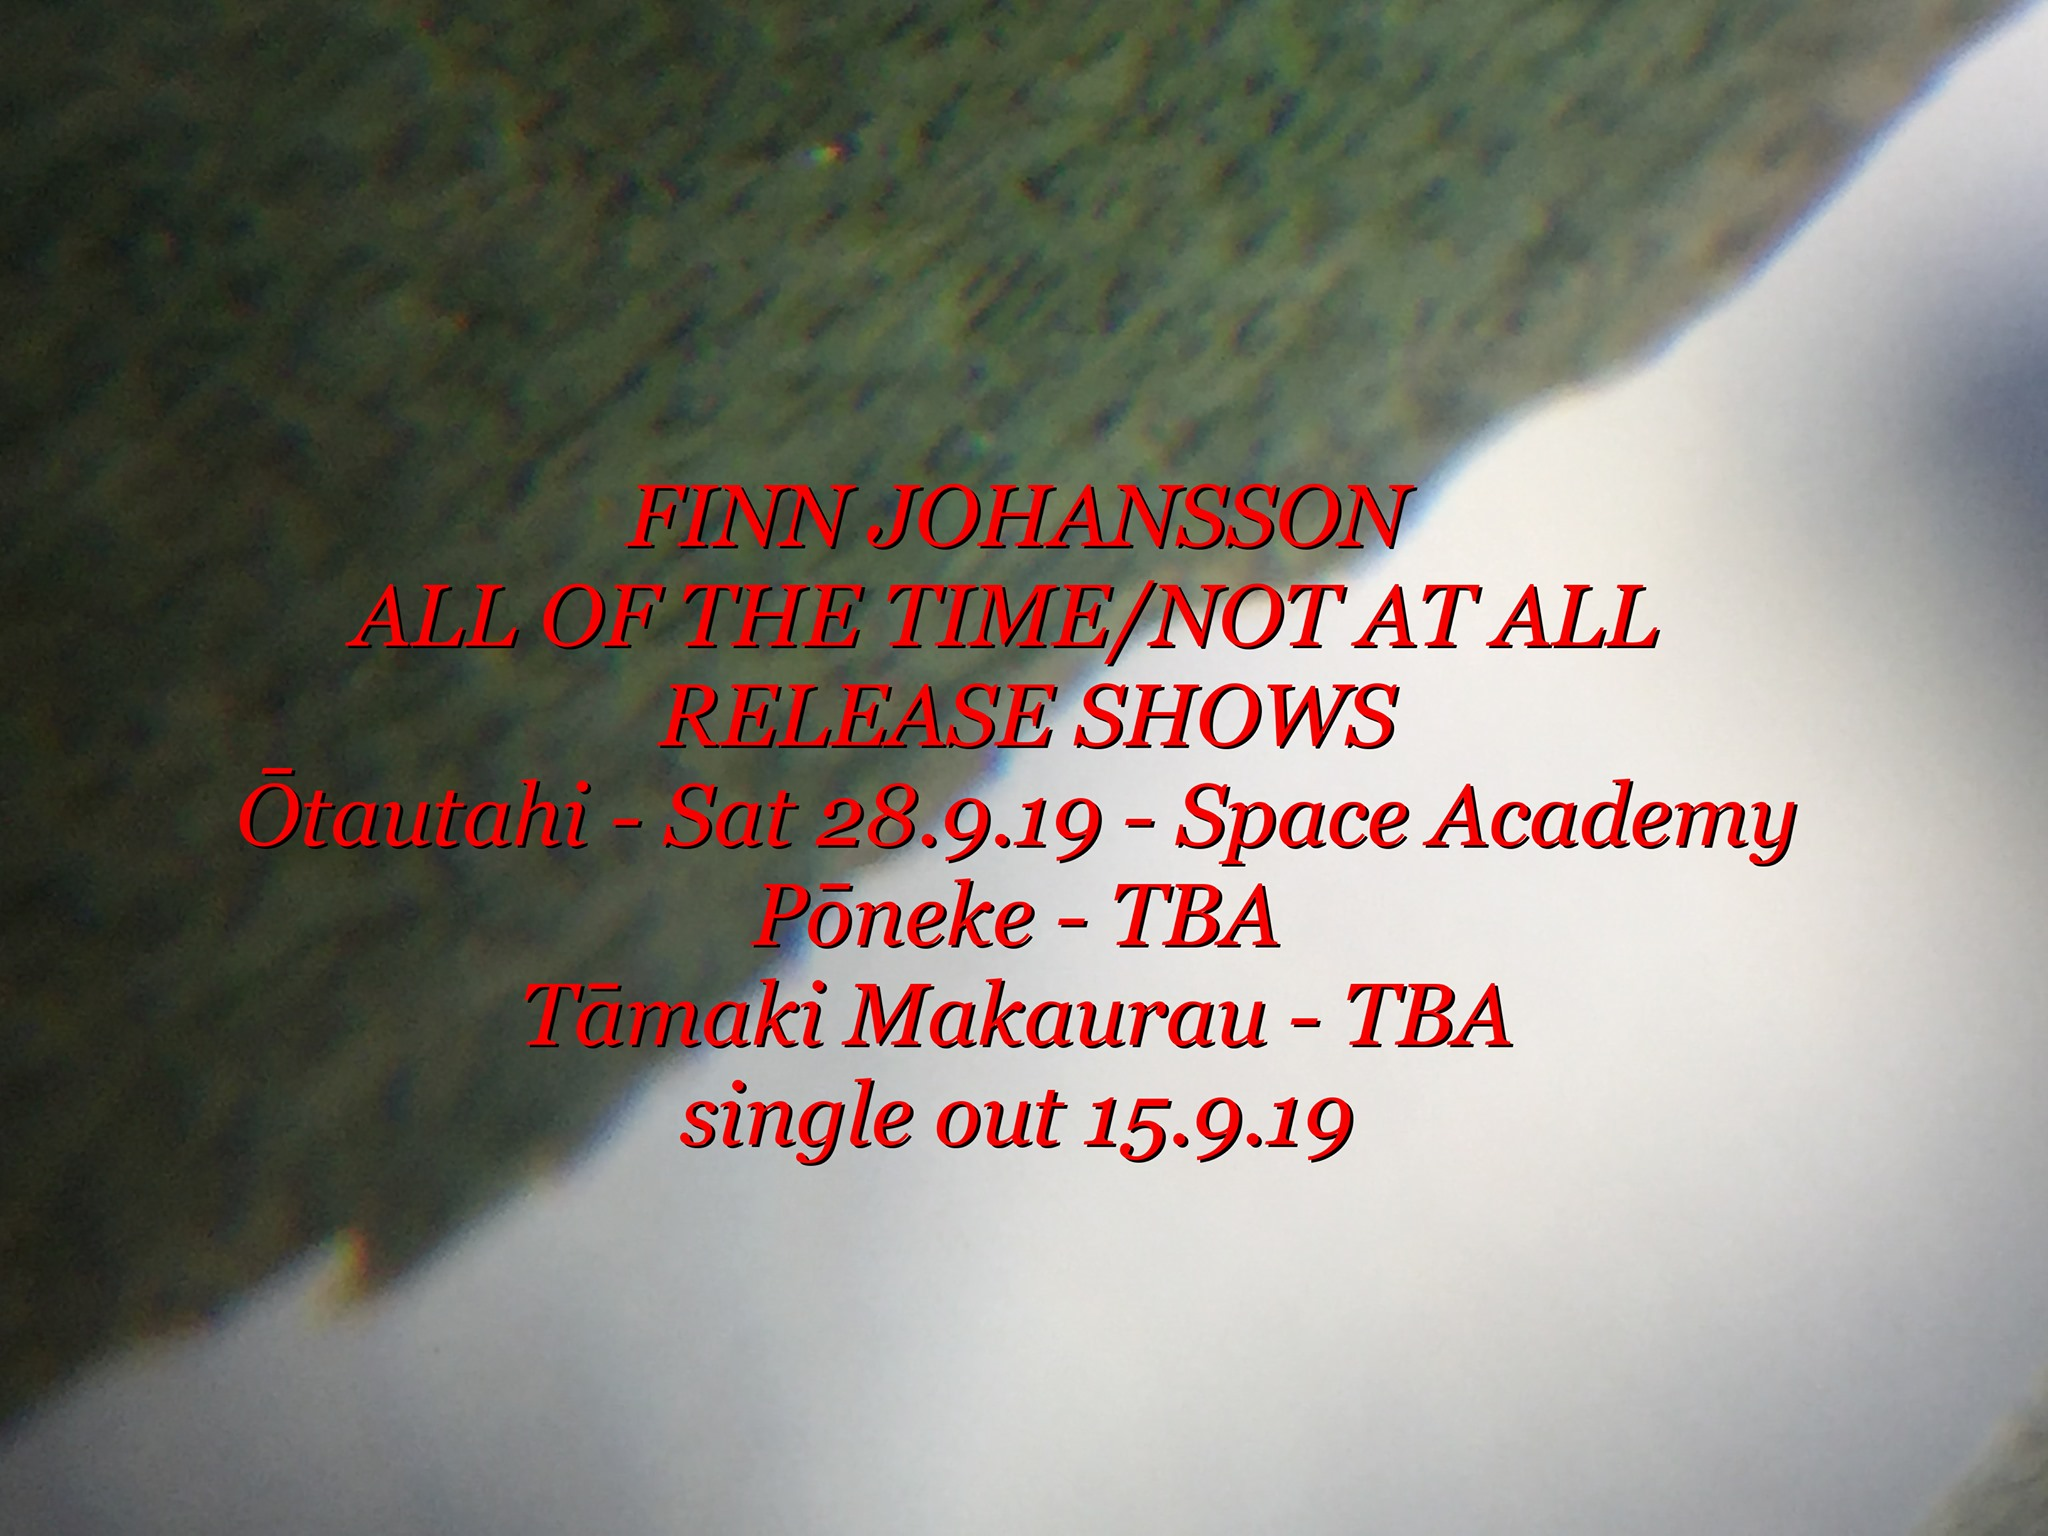 Finn Johansson All Of The Time/Not At All Single Release - Chch